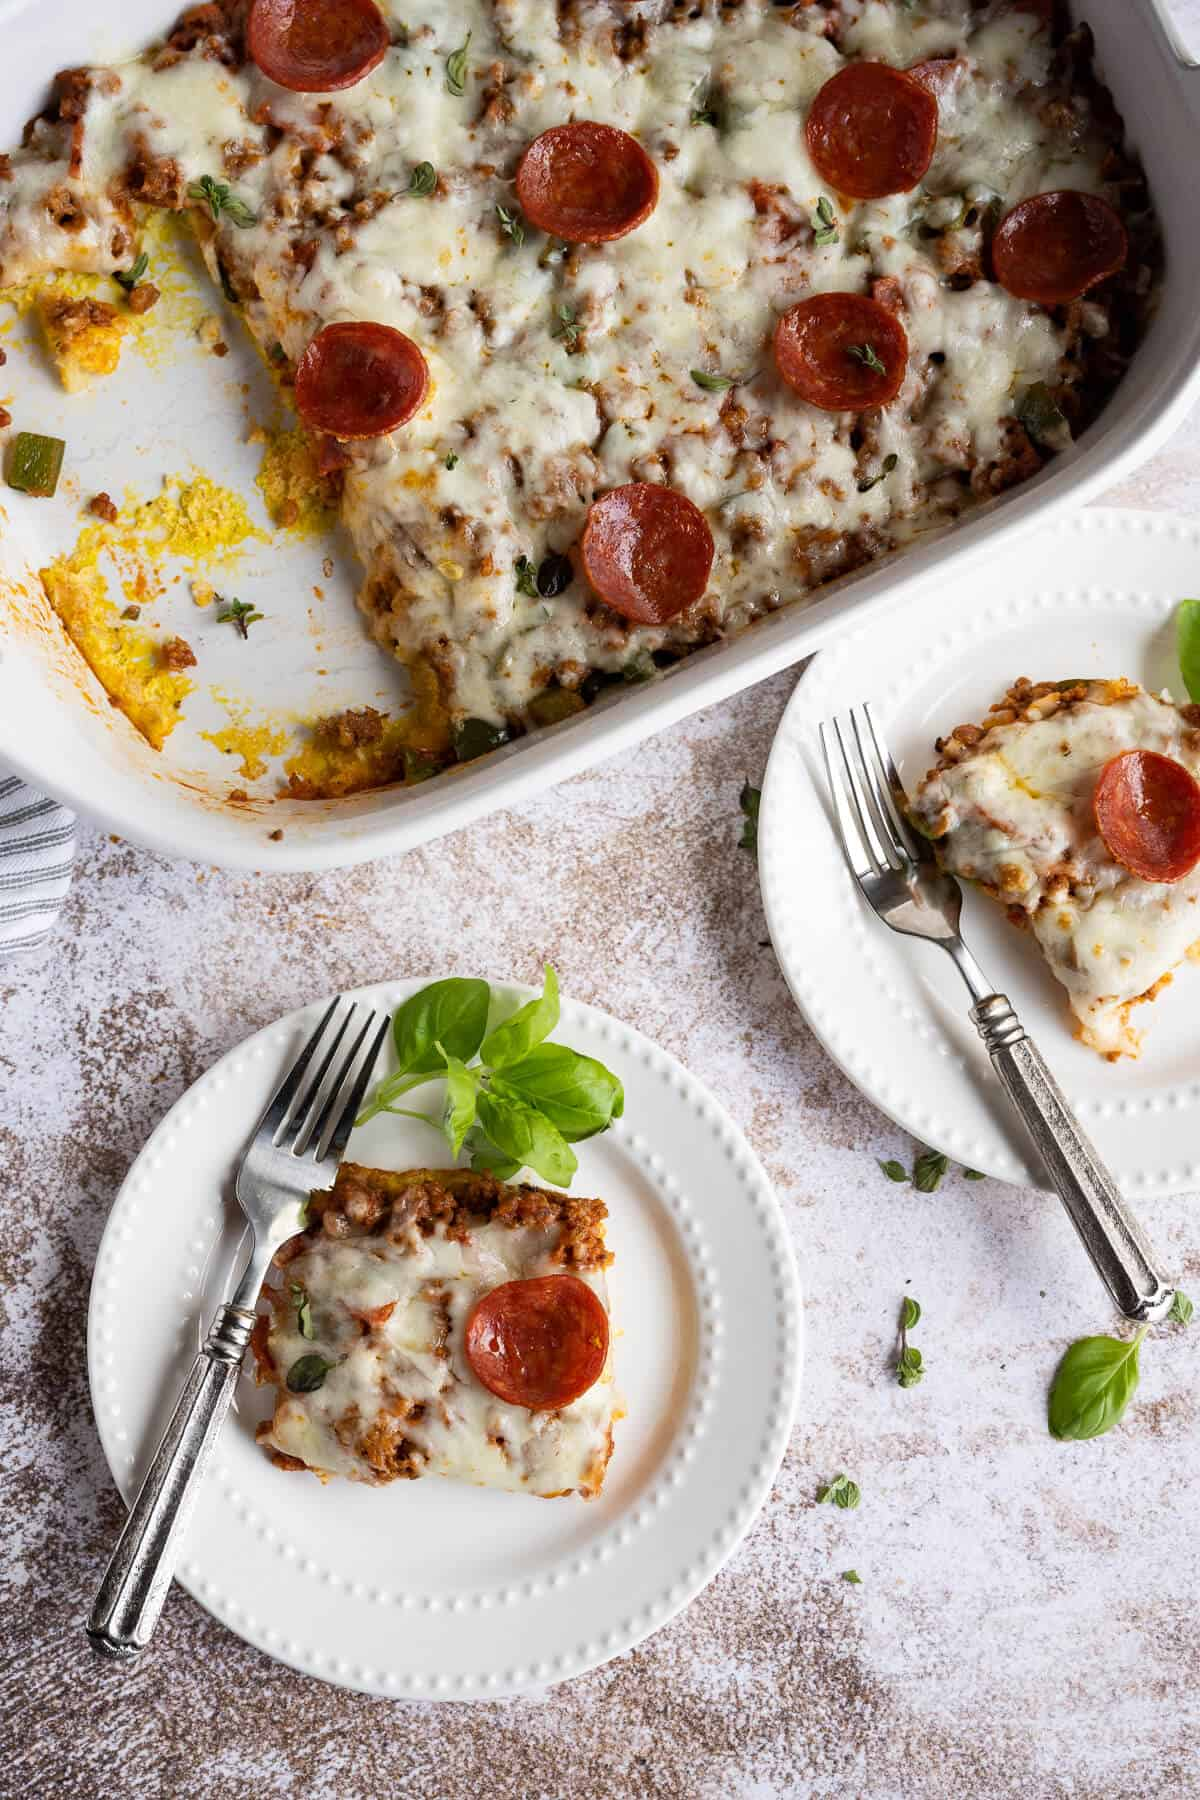 two plates with pieces of low carb pizza casserole garnished with fresh basil